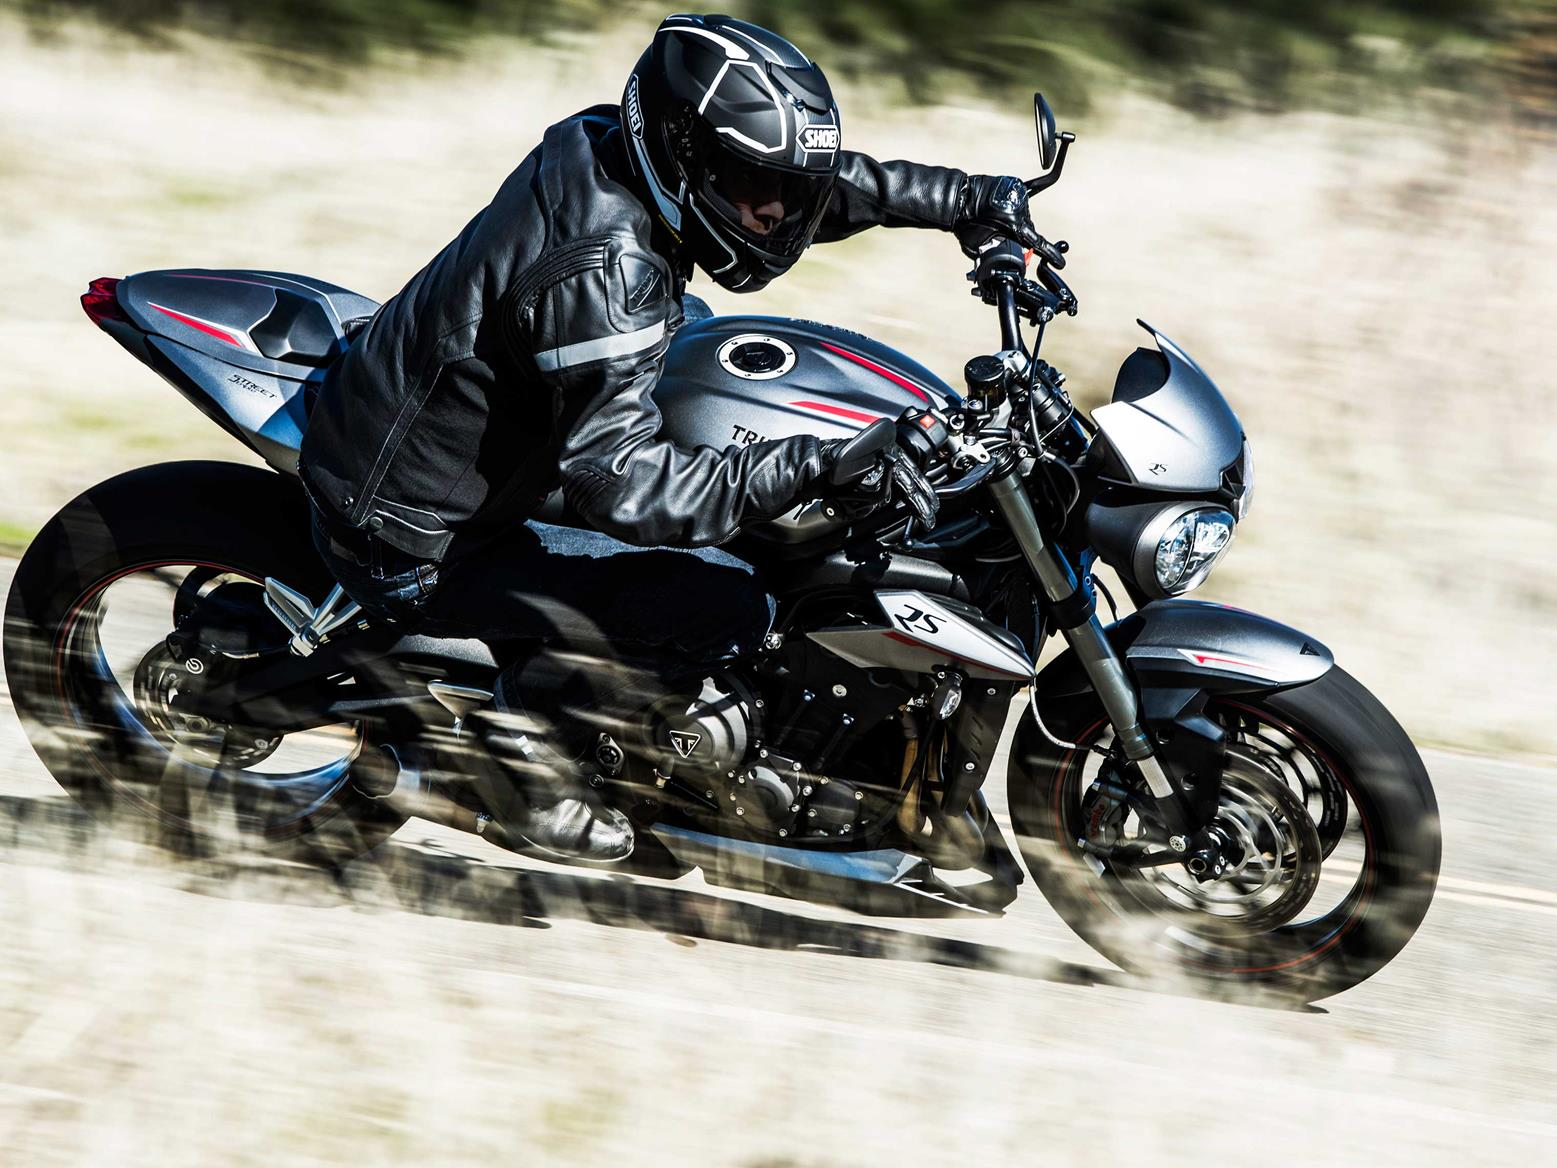 The Triumph Street Triple RS is the ideal mix of power and poise